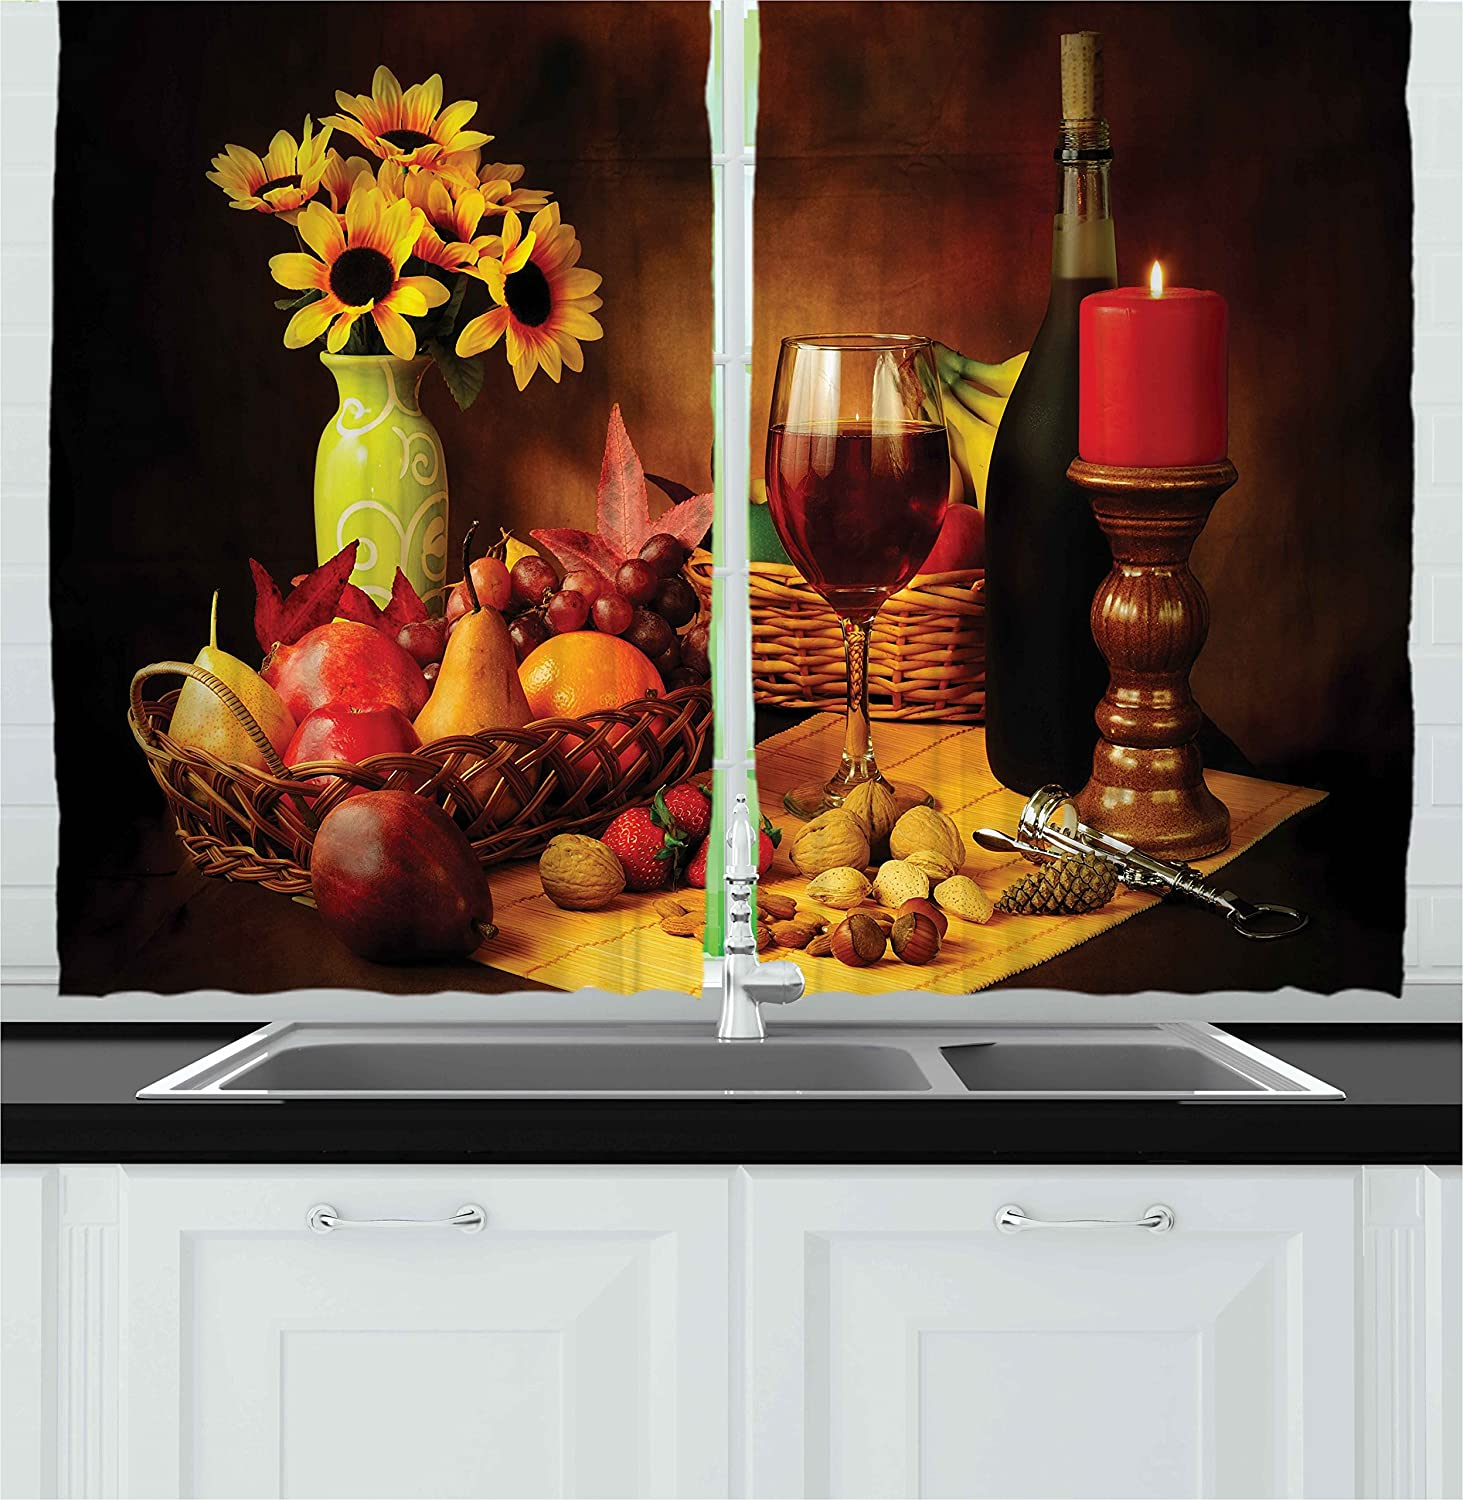 Ambesonne Winery Decor Collection, Still Life Image of Red Wine Flowers Fruits and Nuts with Candle Lighting Romantic Evening, Window Treatments for Kitchen Curtains 2 Panels, 55 X 39 Inches, Yellow